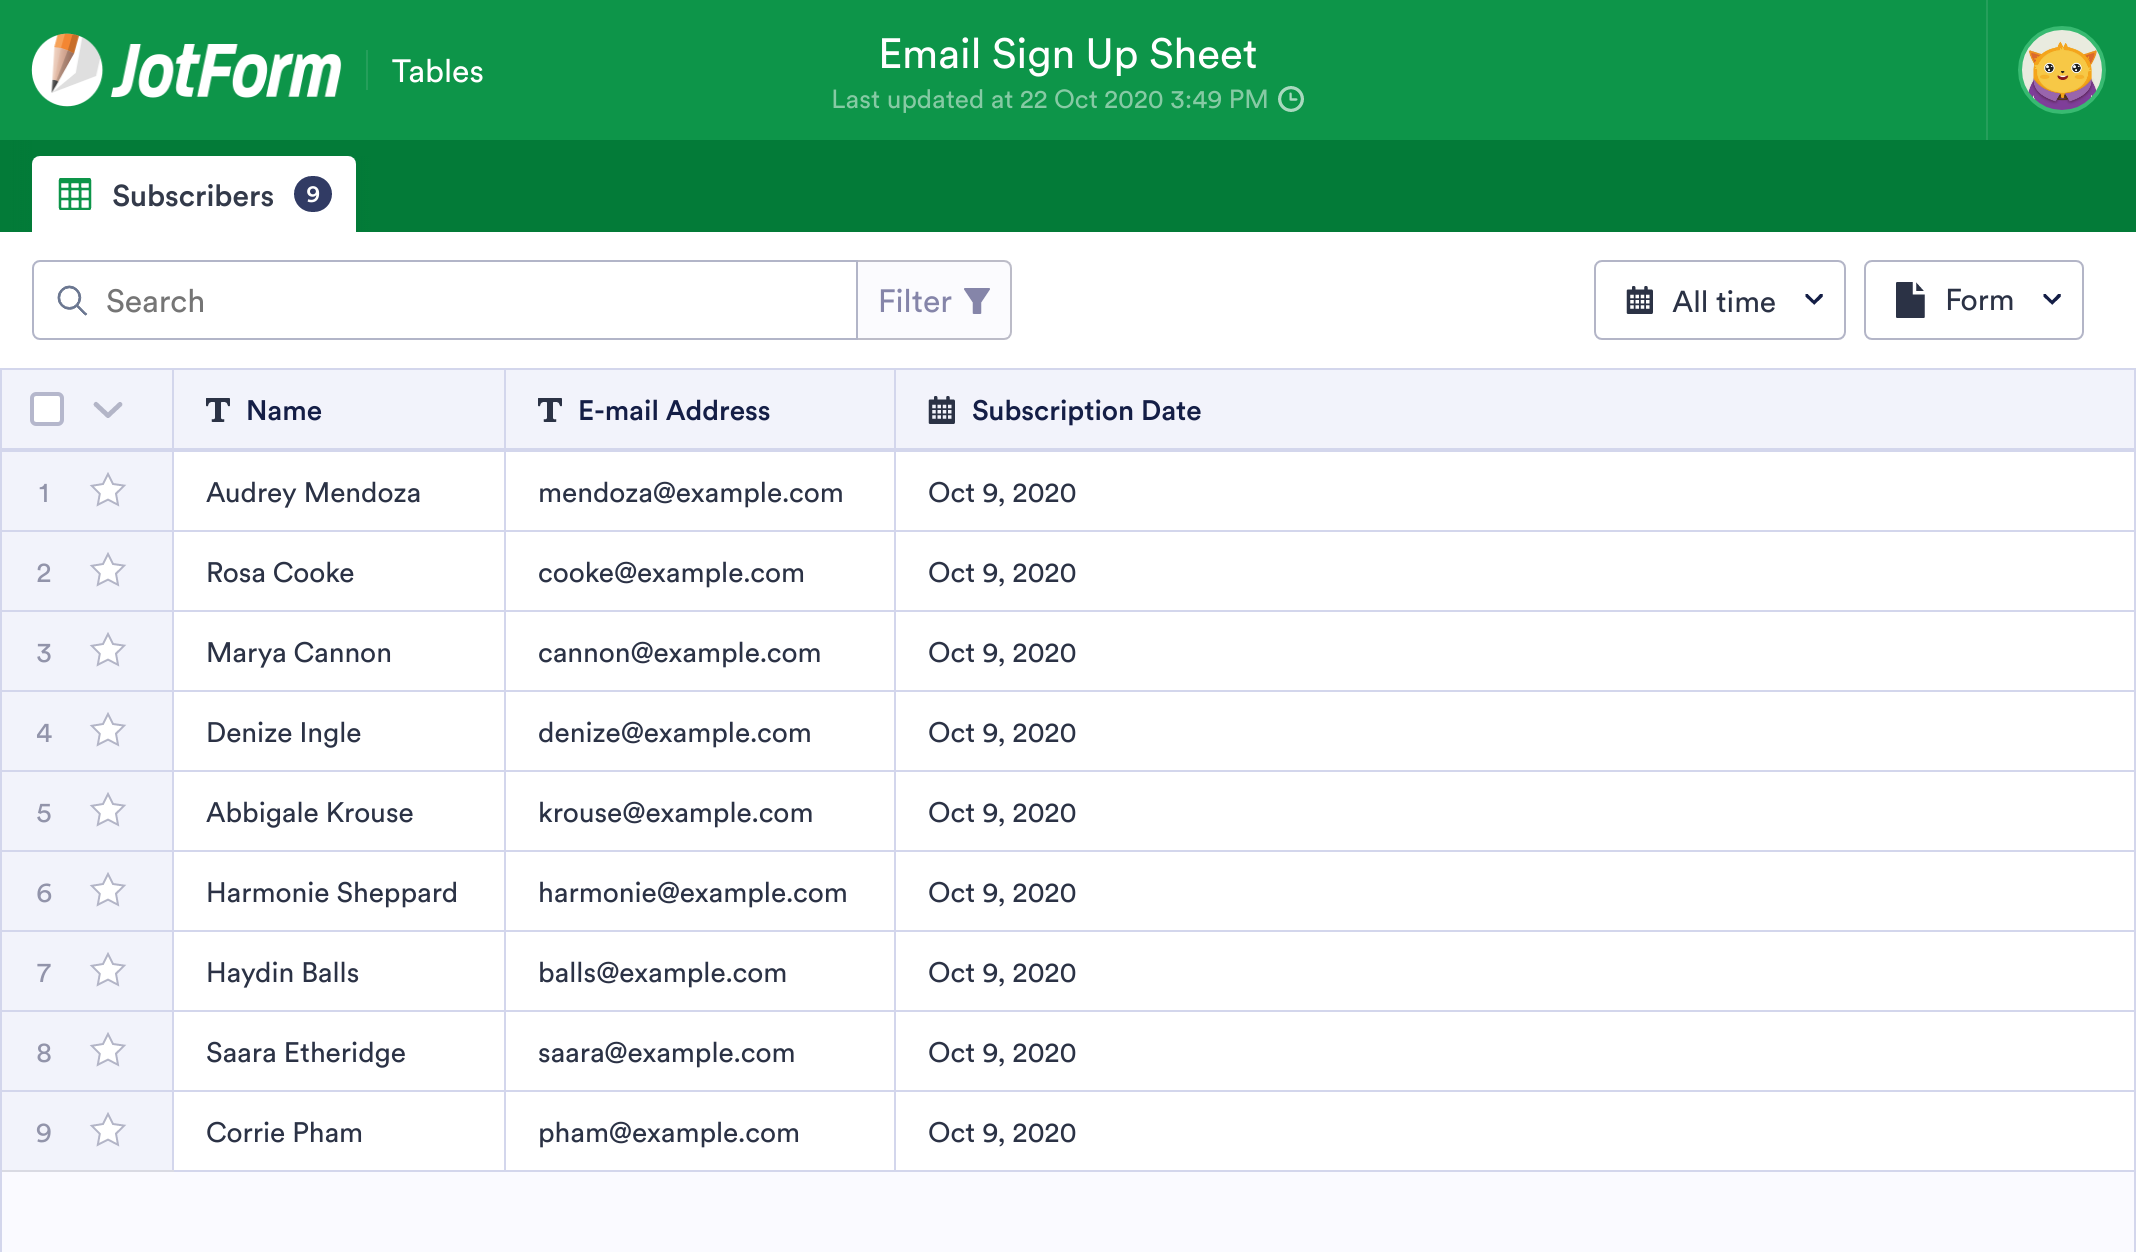 Email Sign Up Sheet